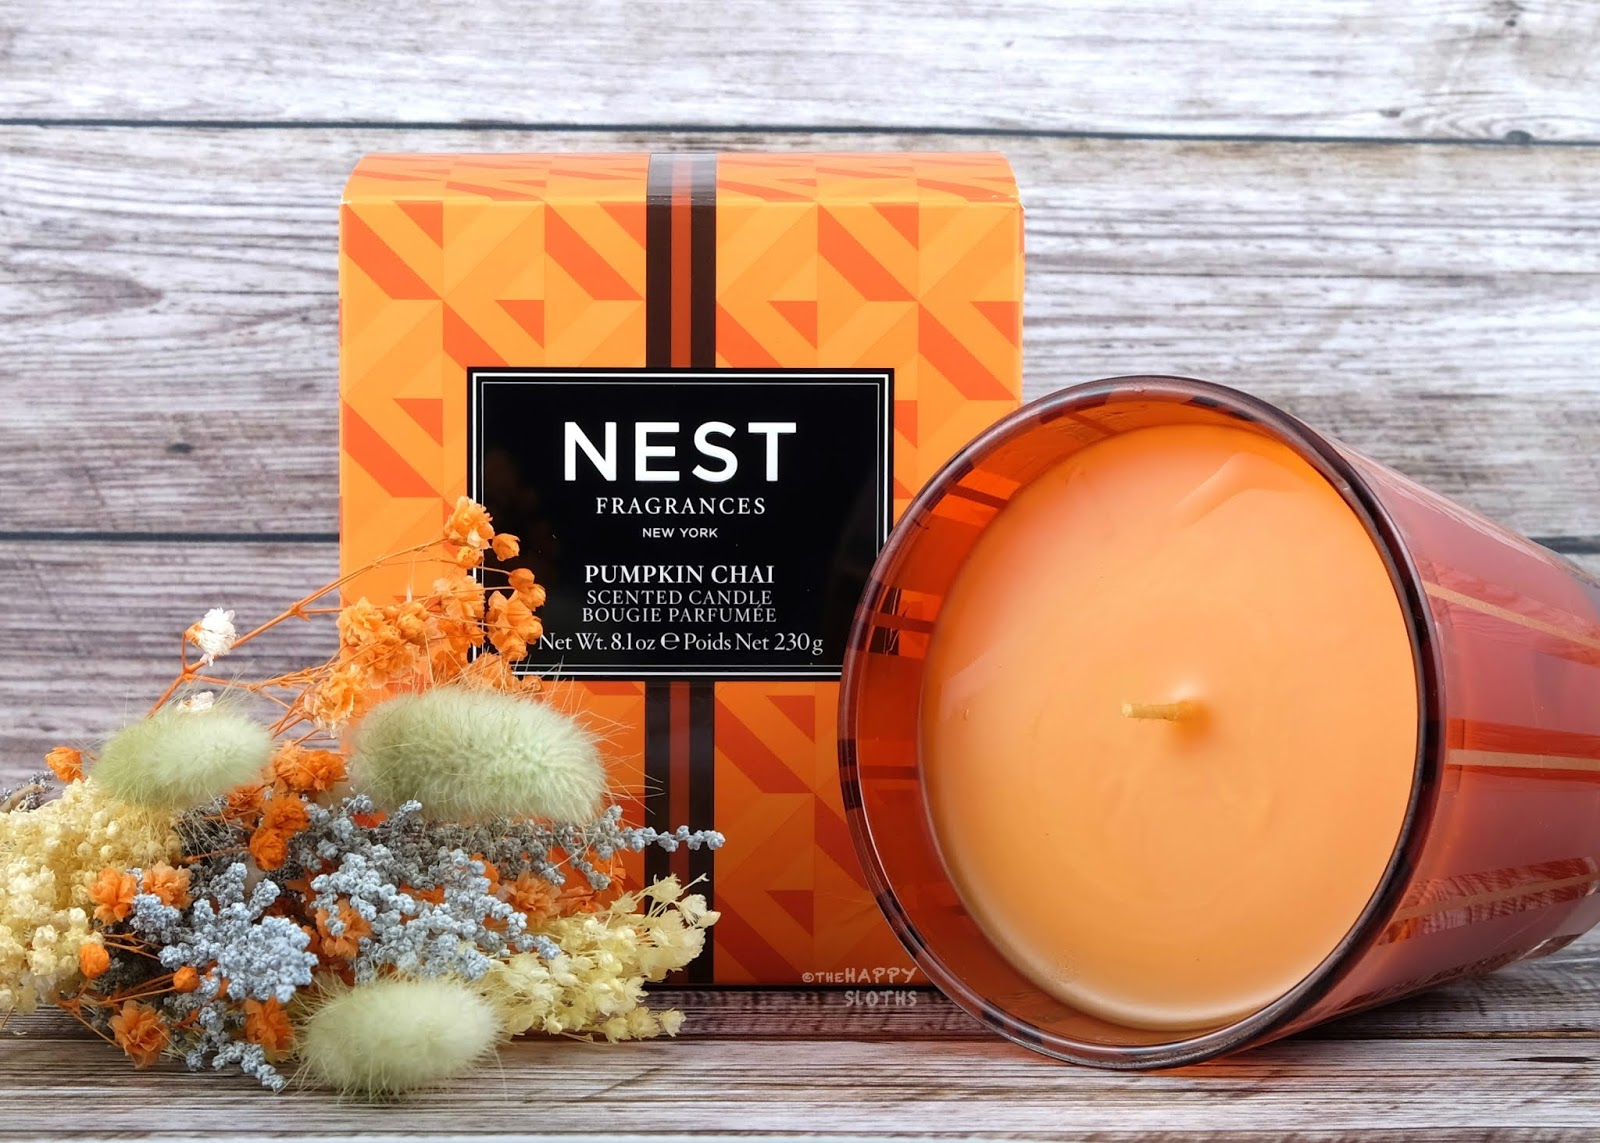 NEST Fragrances | Pumpkin Chai Scented Candle & Reed Diffuser: Review